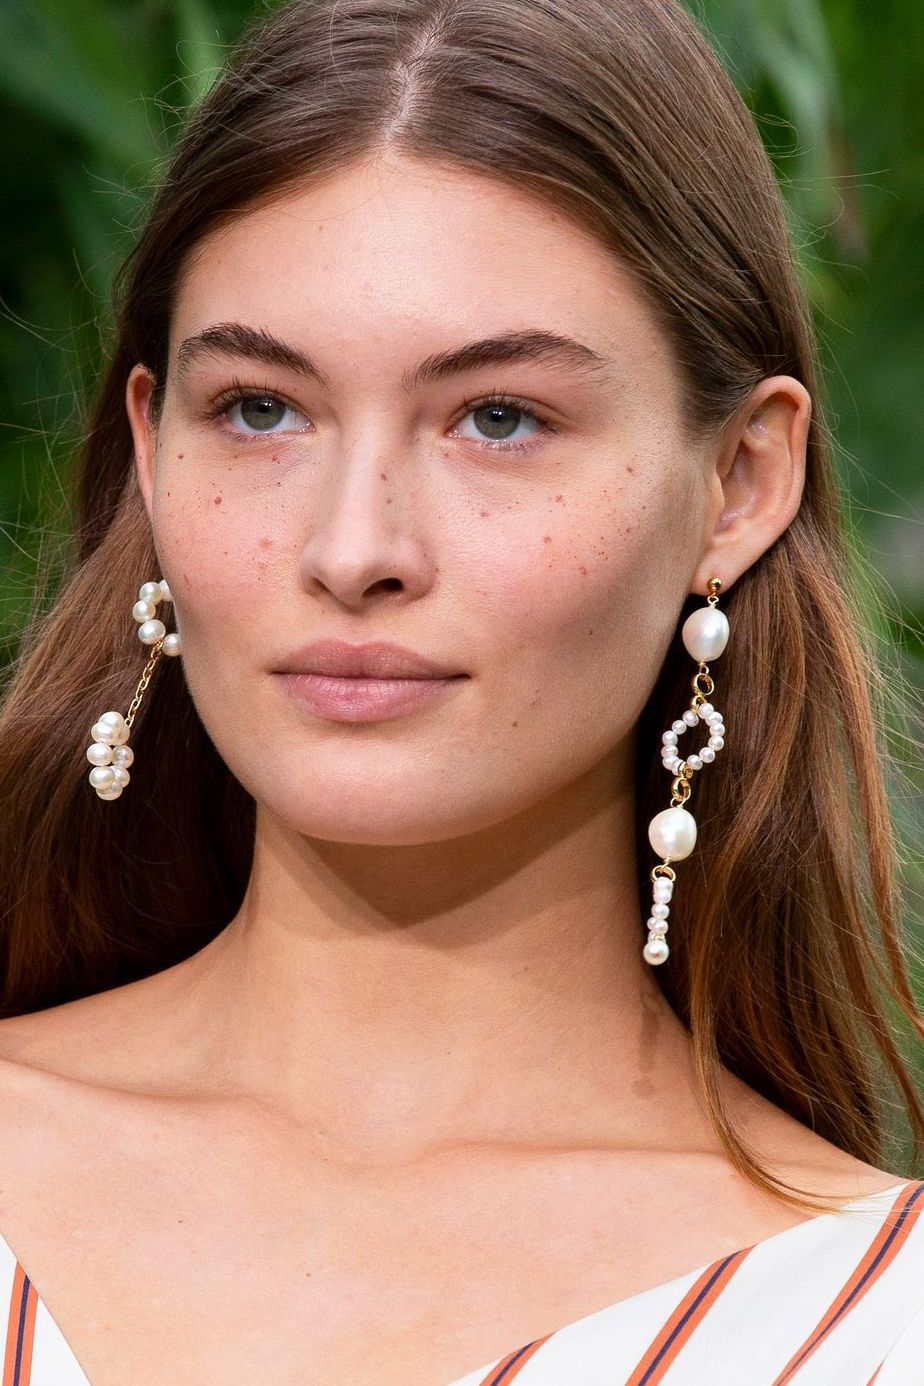 Investment Piece: 2021 Jewelry Trends